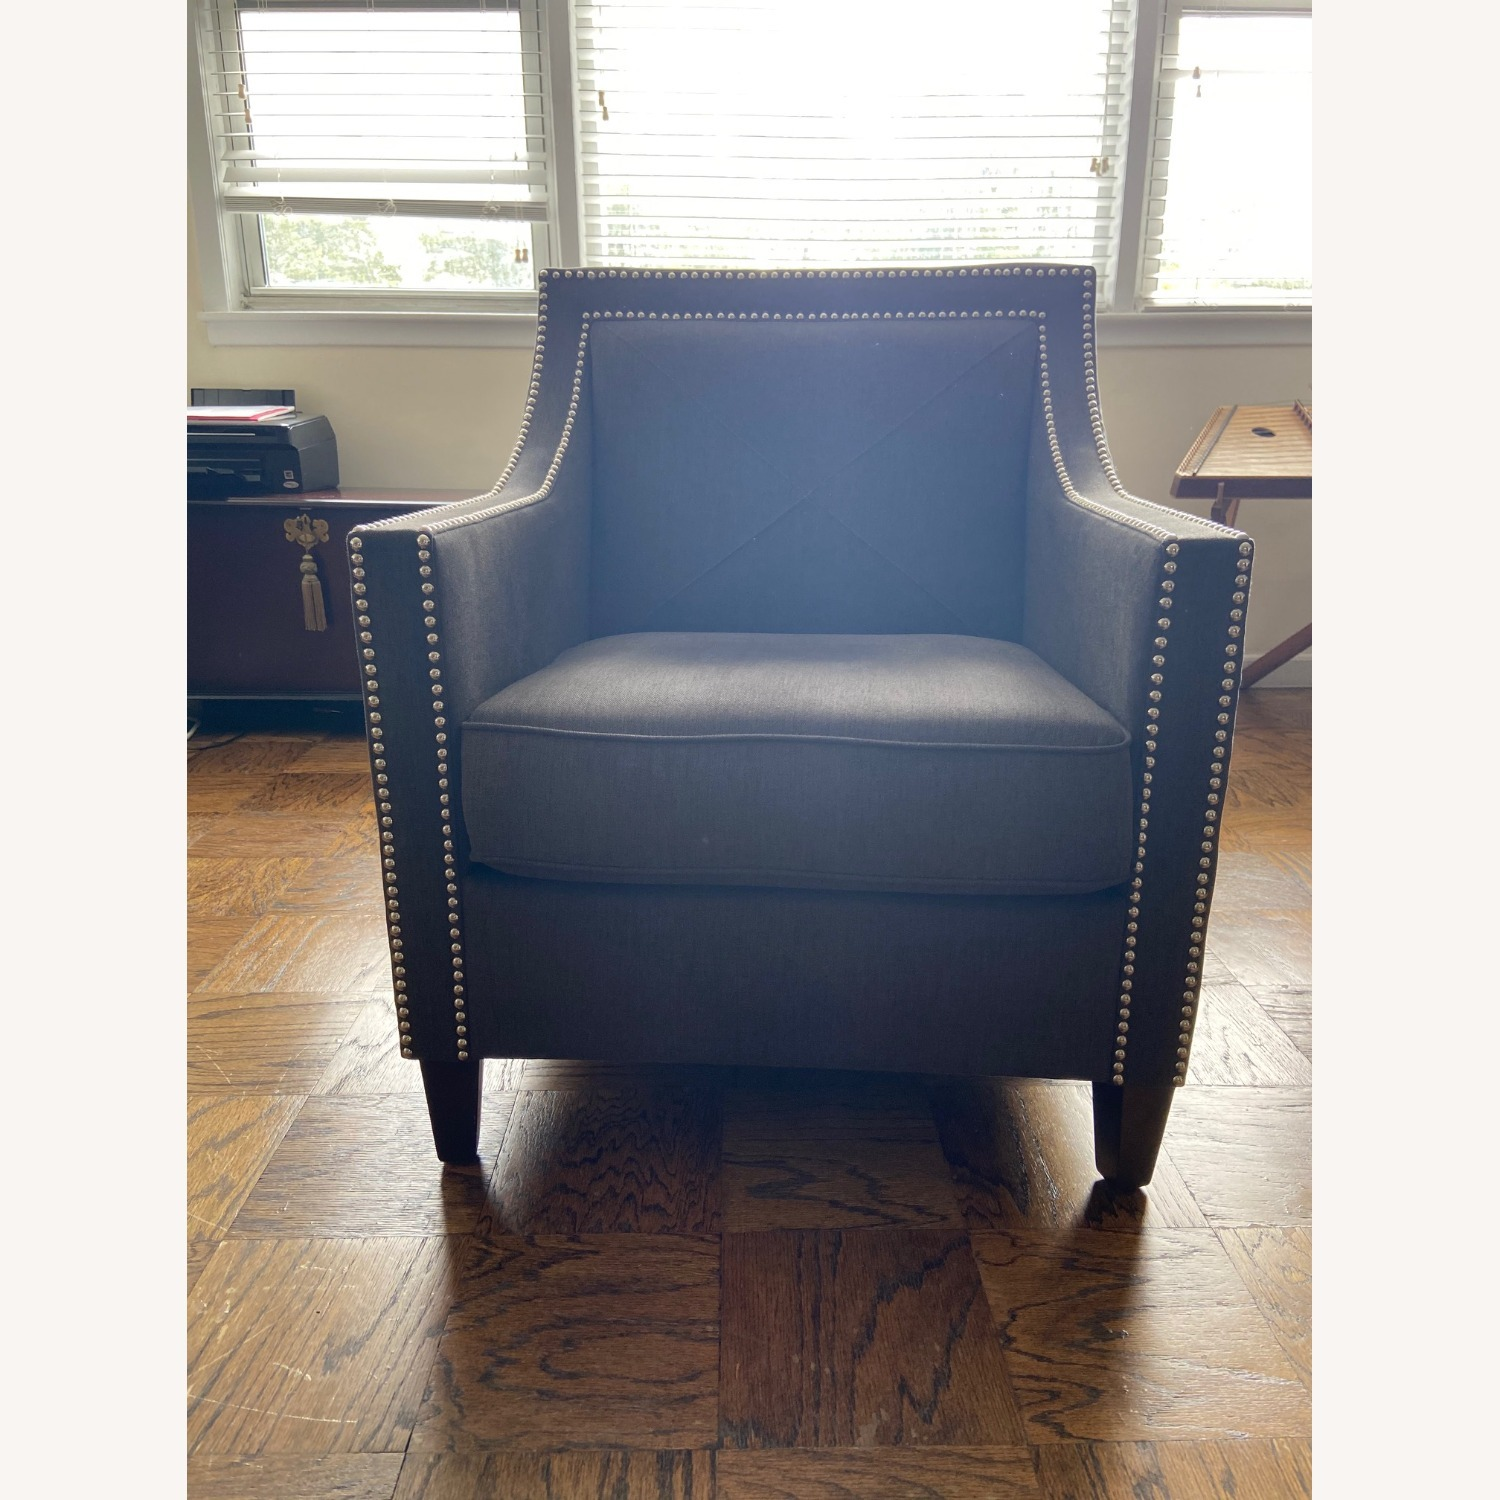 Charcoal Grey Upholstered Arm Chair - image-2